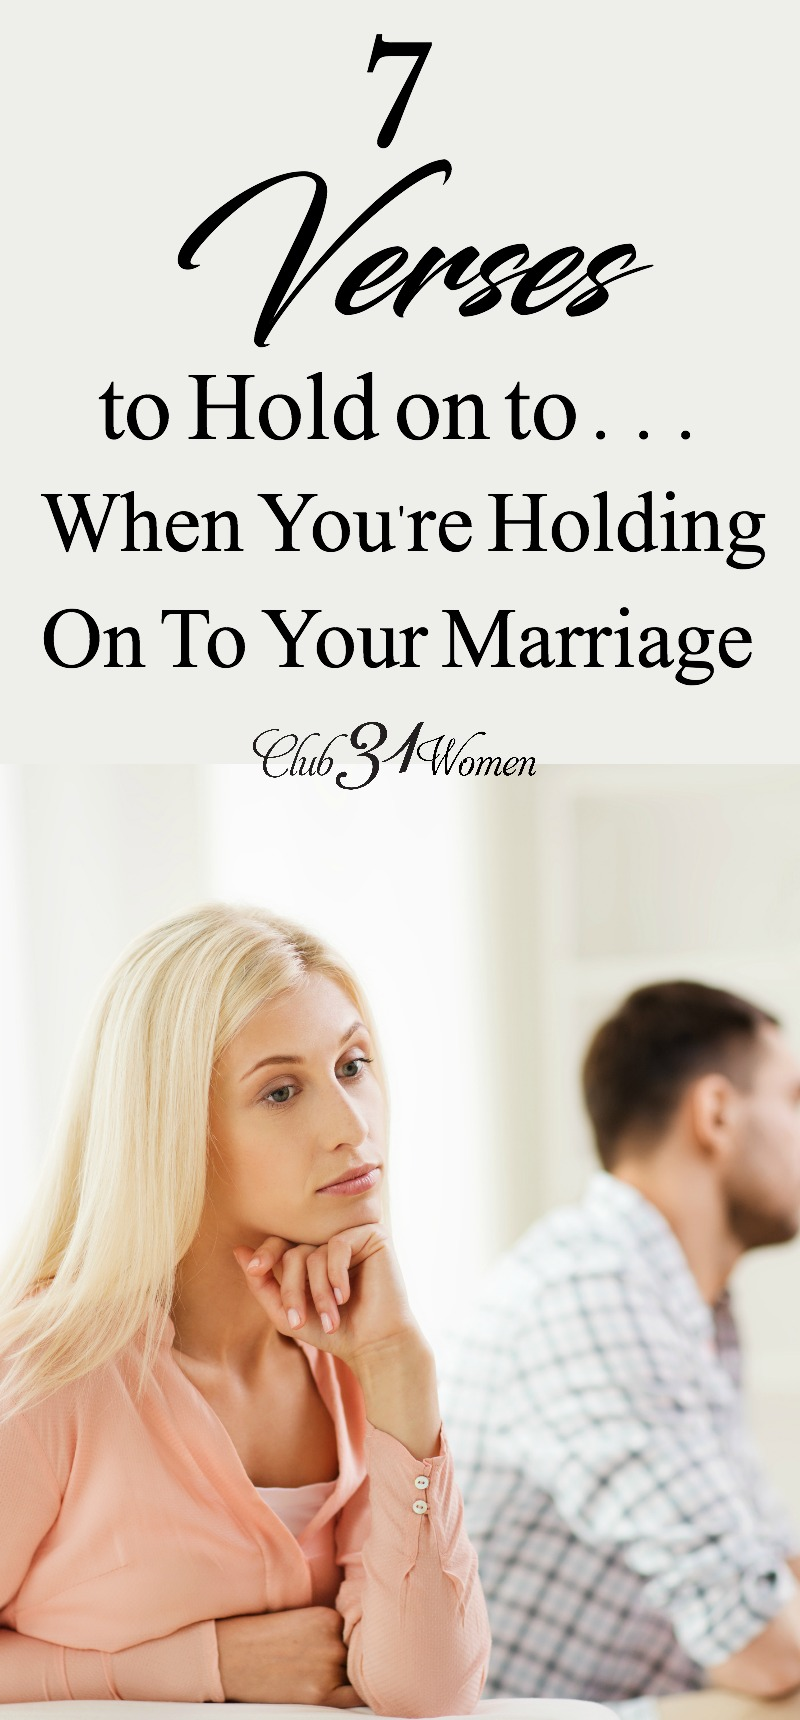 If you're struggling to hold on to your marriage? If you could use encouragement to keep on together? Here are 7 verses to inspire you. With FREE Printable!